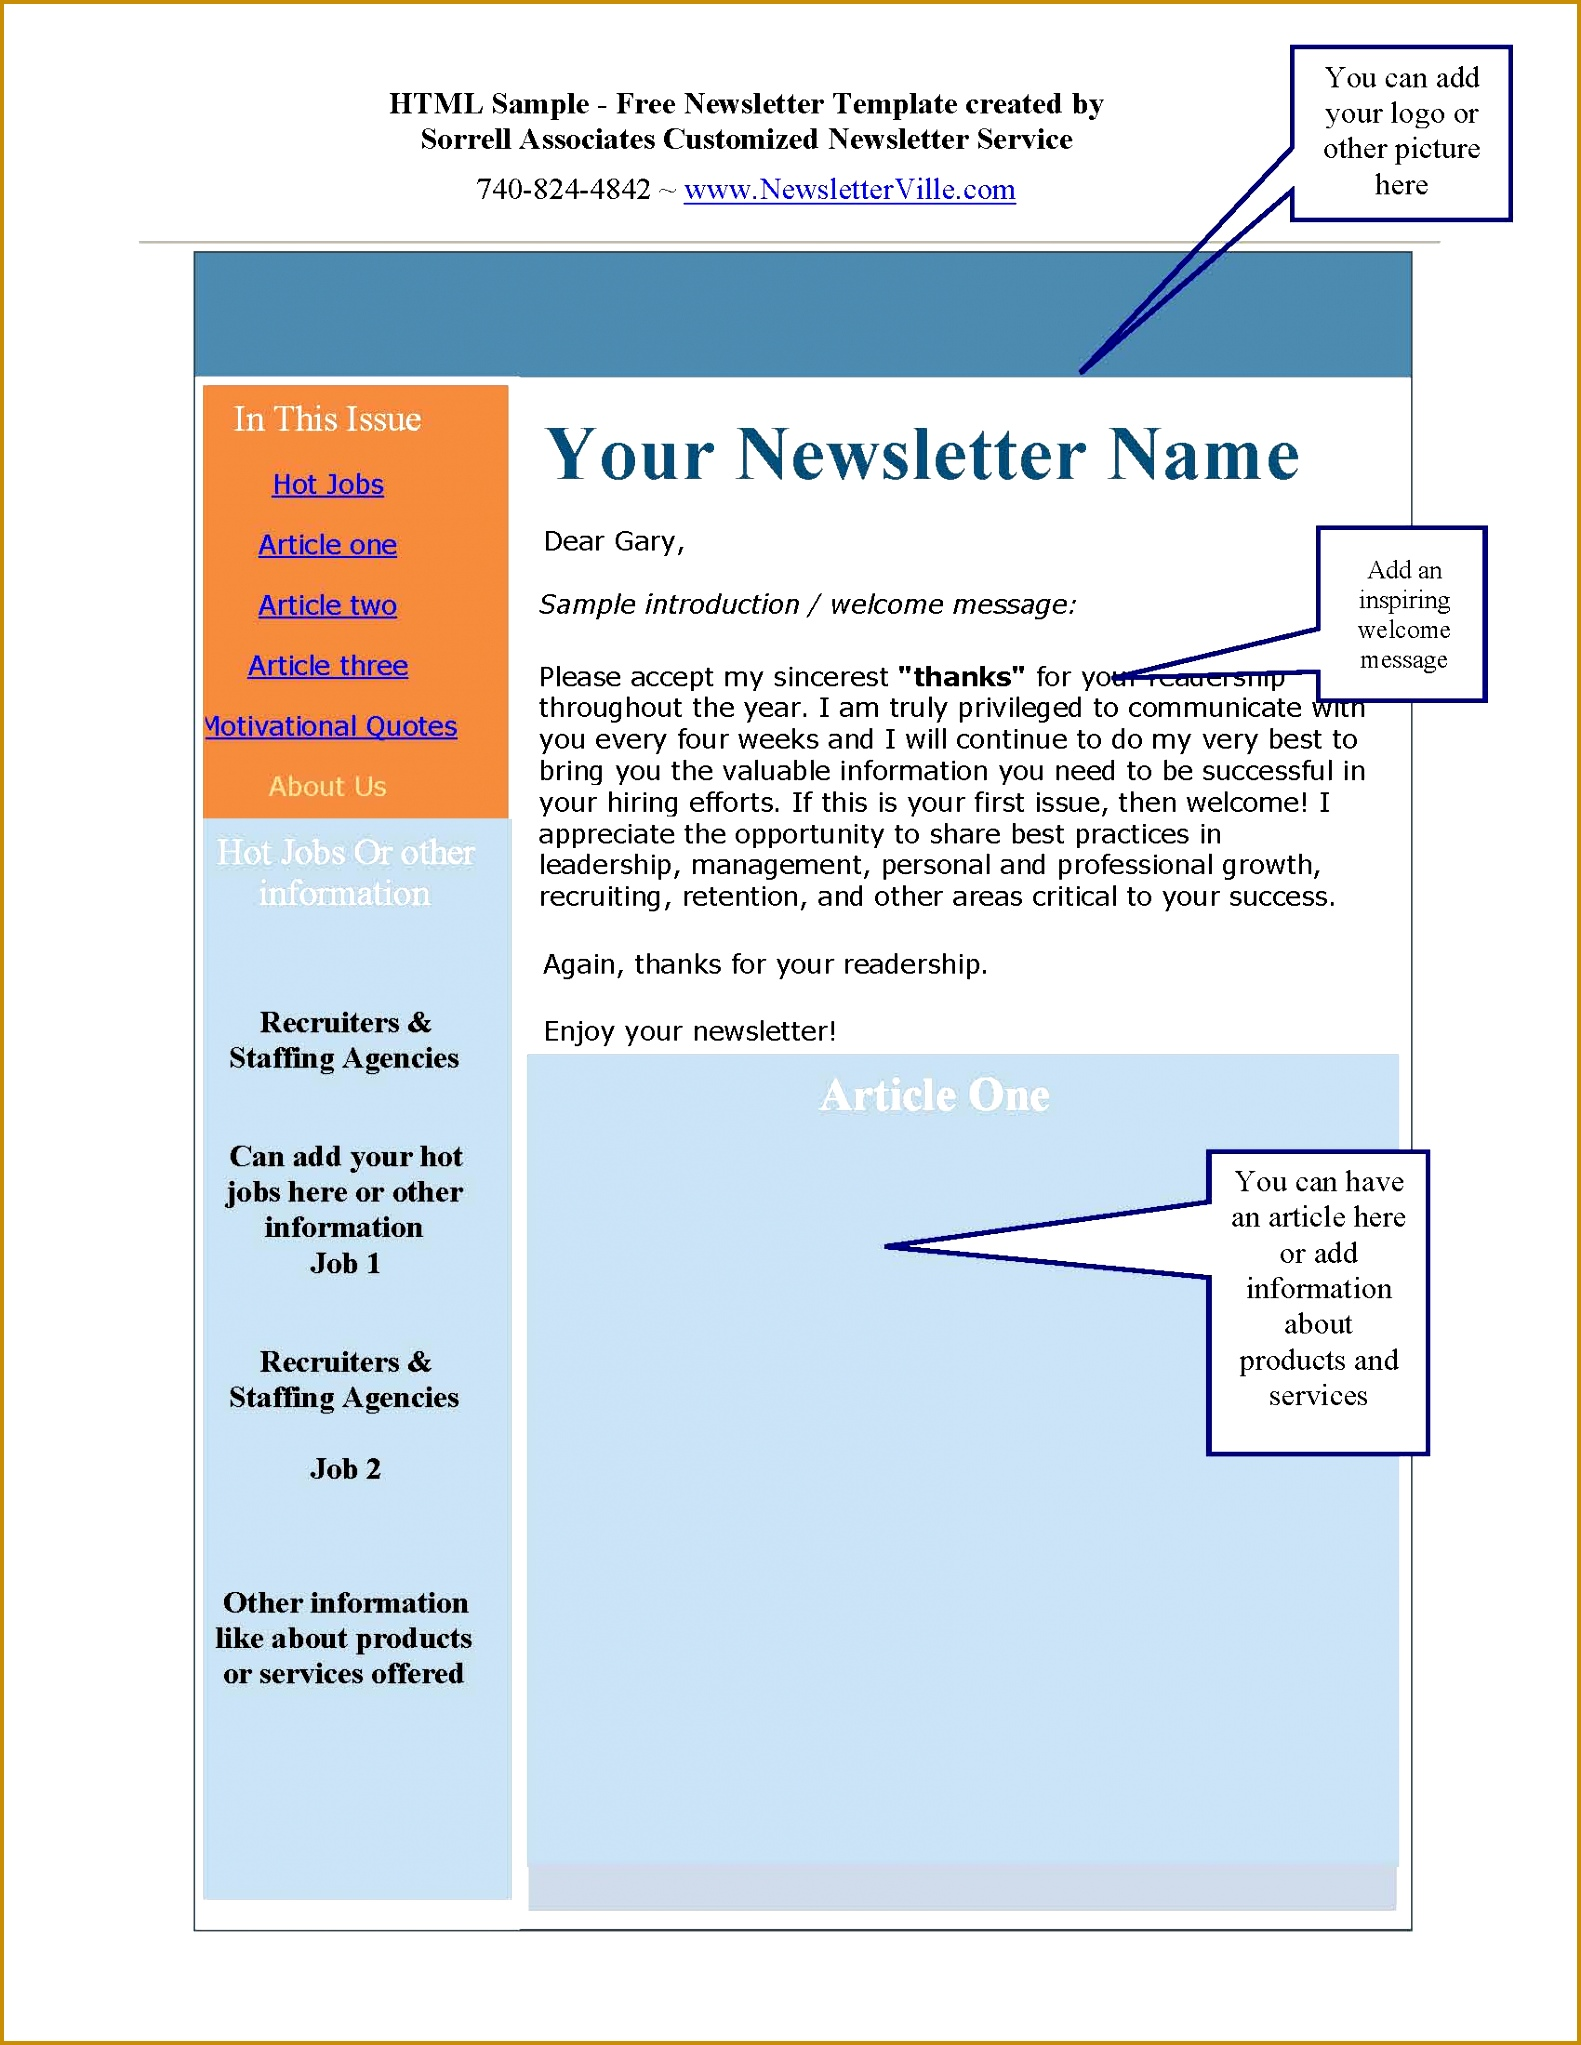 Free Newsletter Template HTML Version 5m Page 1 20451581